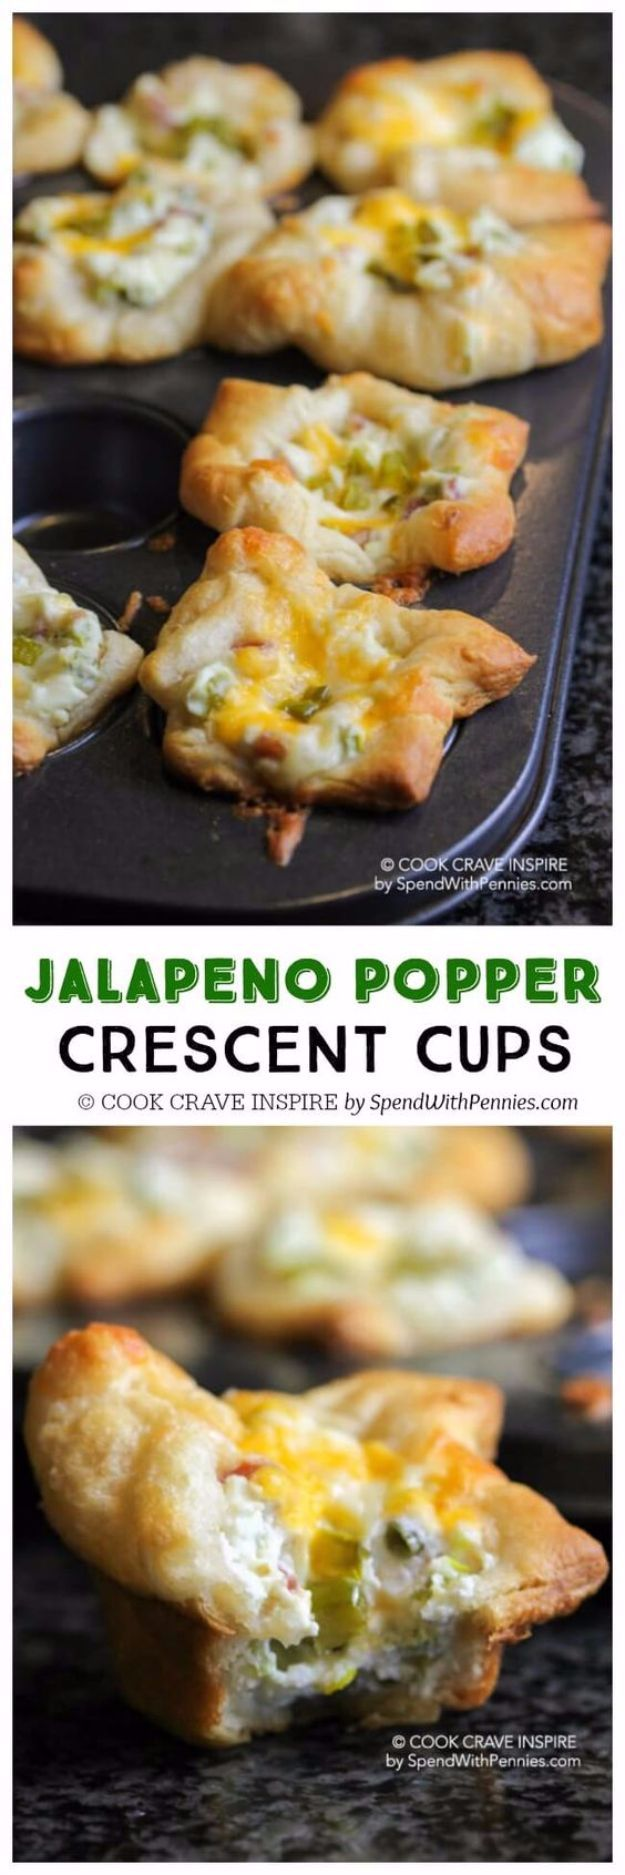 Best Crescent Roll Recipes - Jalapeno Popper Crescent Cups - Easy Homemade Dinner Recipe Ideas With Cresent Rolls, Breakfast, Snack, Appetizers and Dessert - With Chicken and Ground Beef, Hot Dogs, Pizza, Garlic Taco, Sweet Desserts - DIY Projects and Crafts by DIY JOY http://diyjoy.com/crescent-roll-recipes